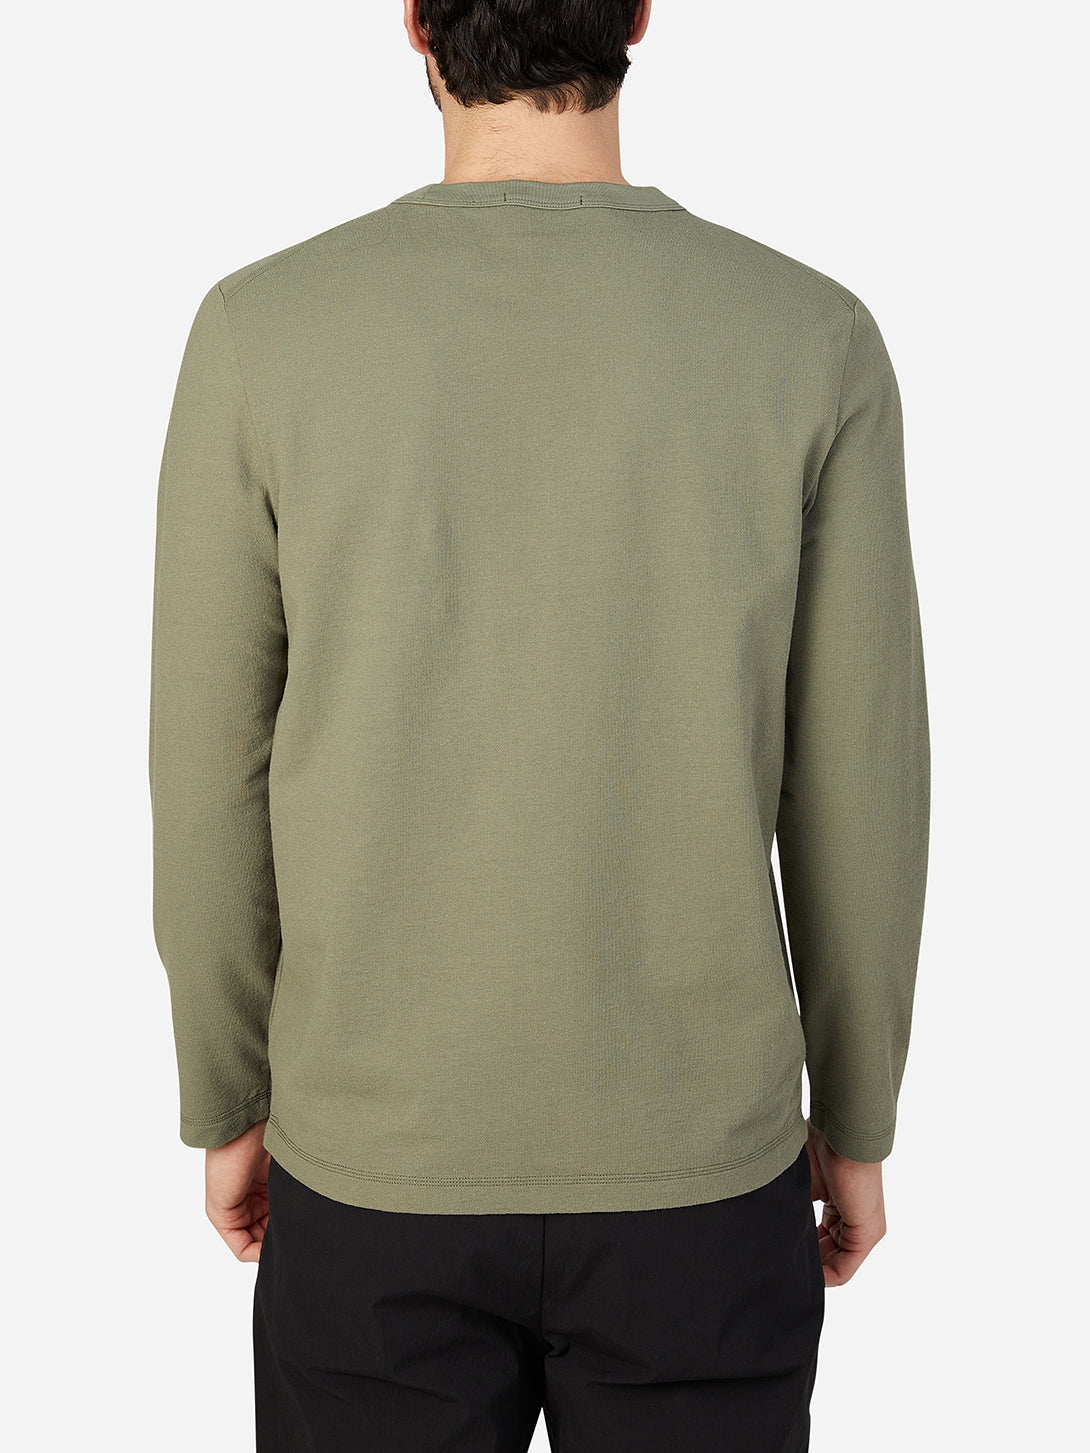 OLIVE GREEN long sleeve shirt for men torrey crew neck tee ons clothing